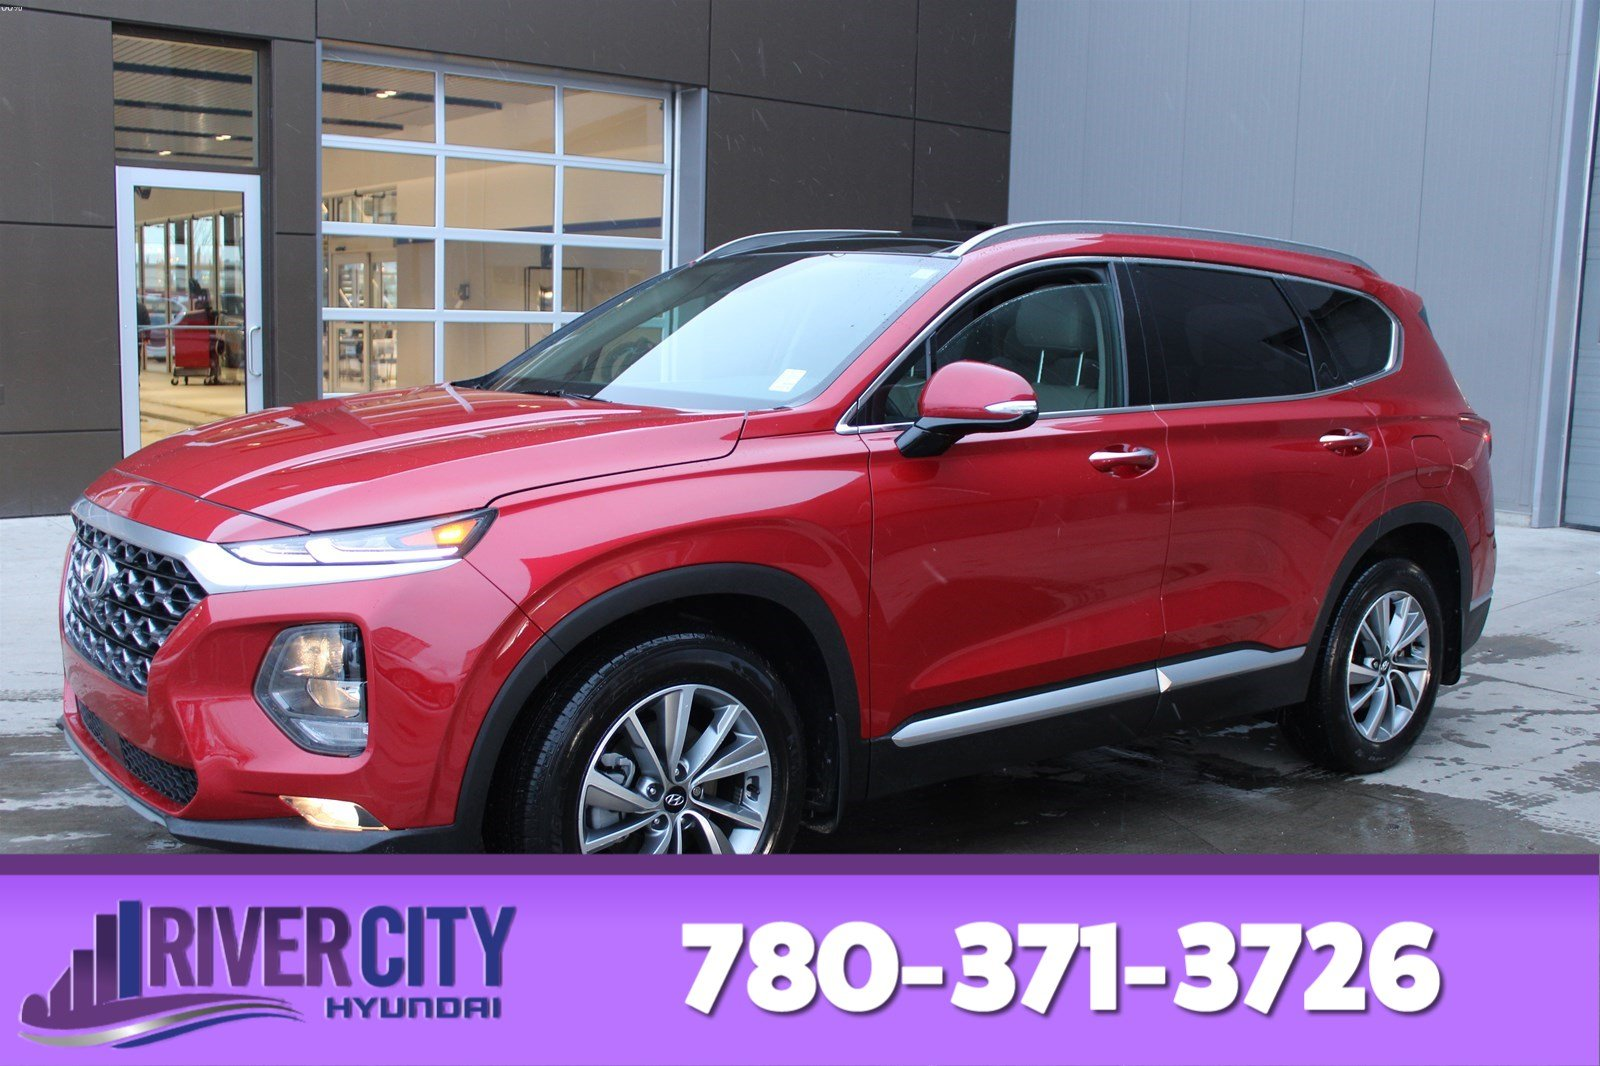 Certified Pre-Owned 2019 Hyundai Santa Fe AWD LUXURY Leather, Heated Seats, Panoramic Roof, Back-up Cam, Bluetooth,